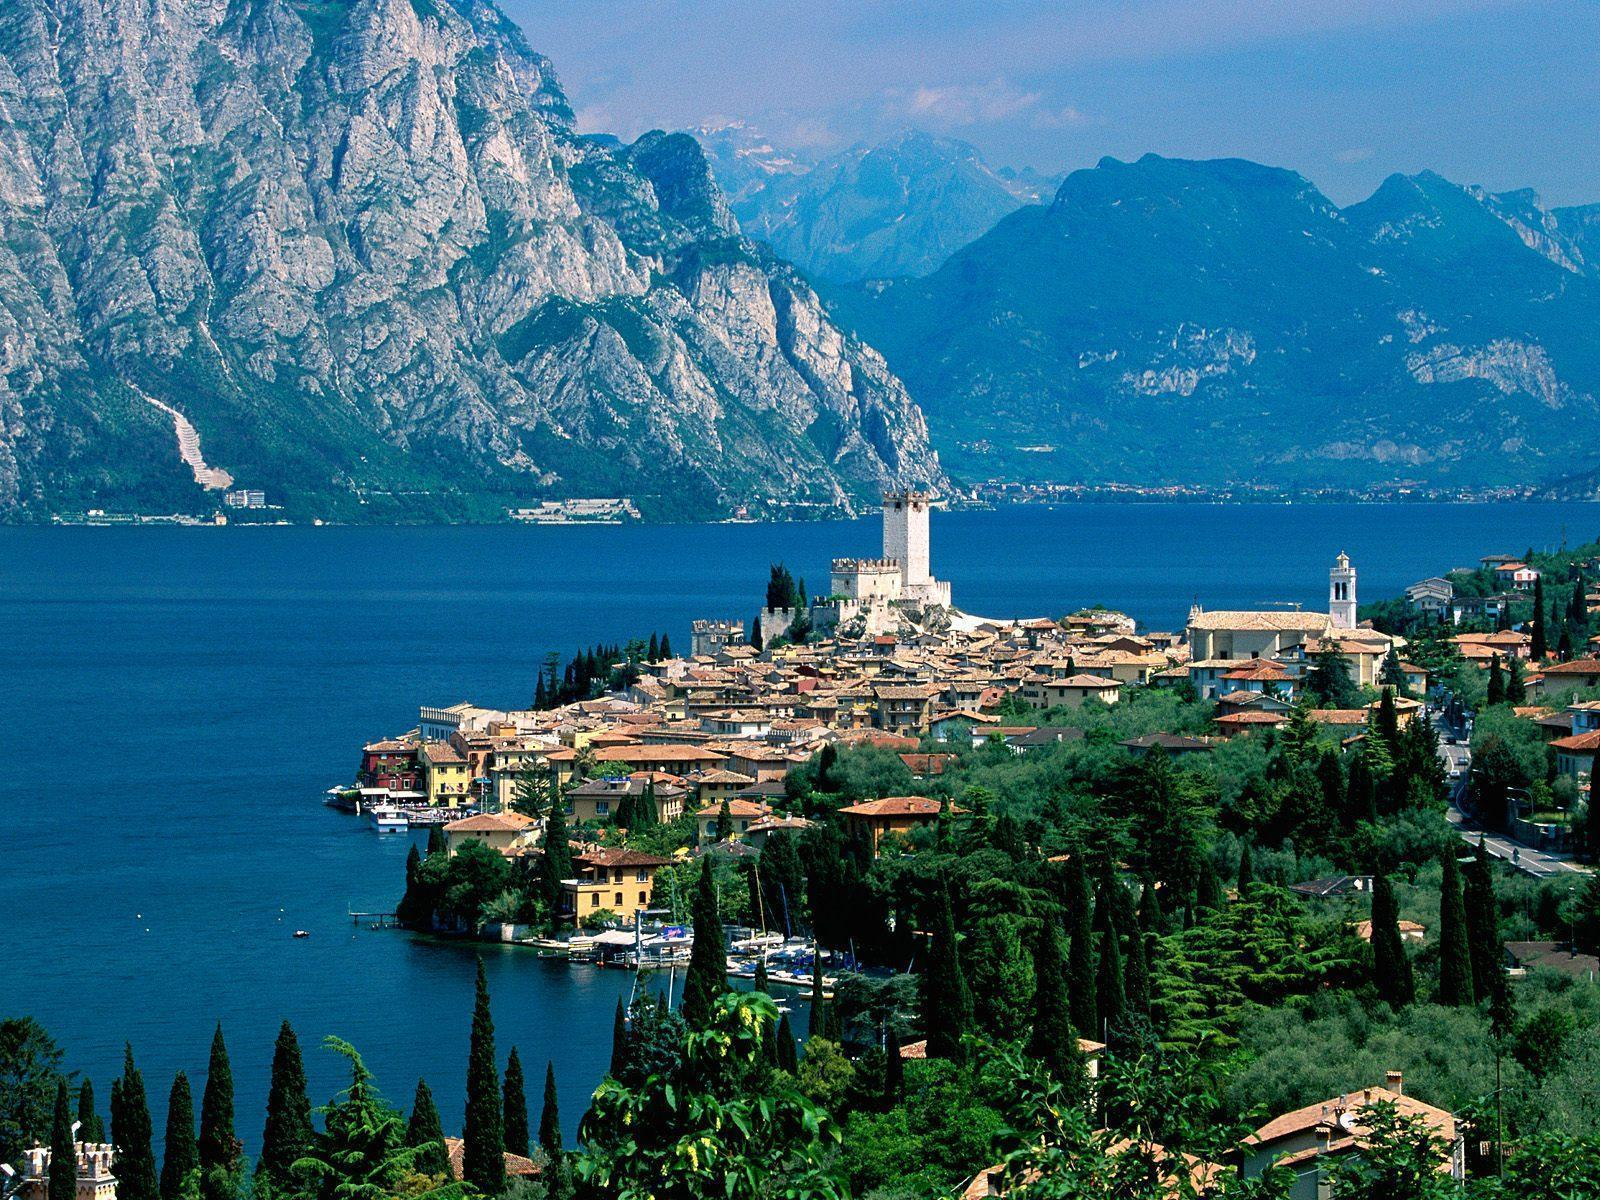 Lake Garda Italy free desktop background - free wallpaper image